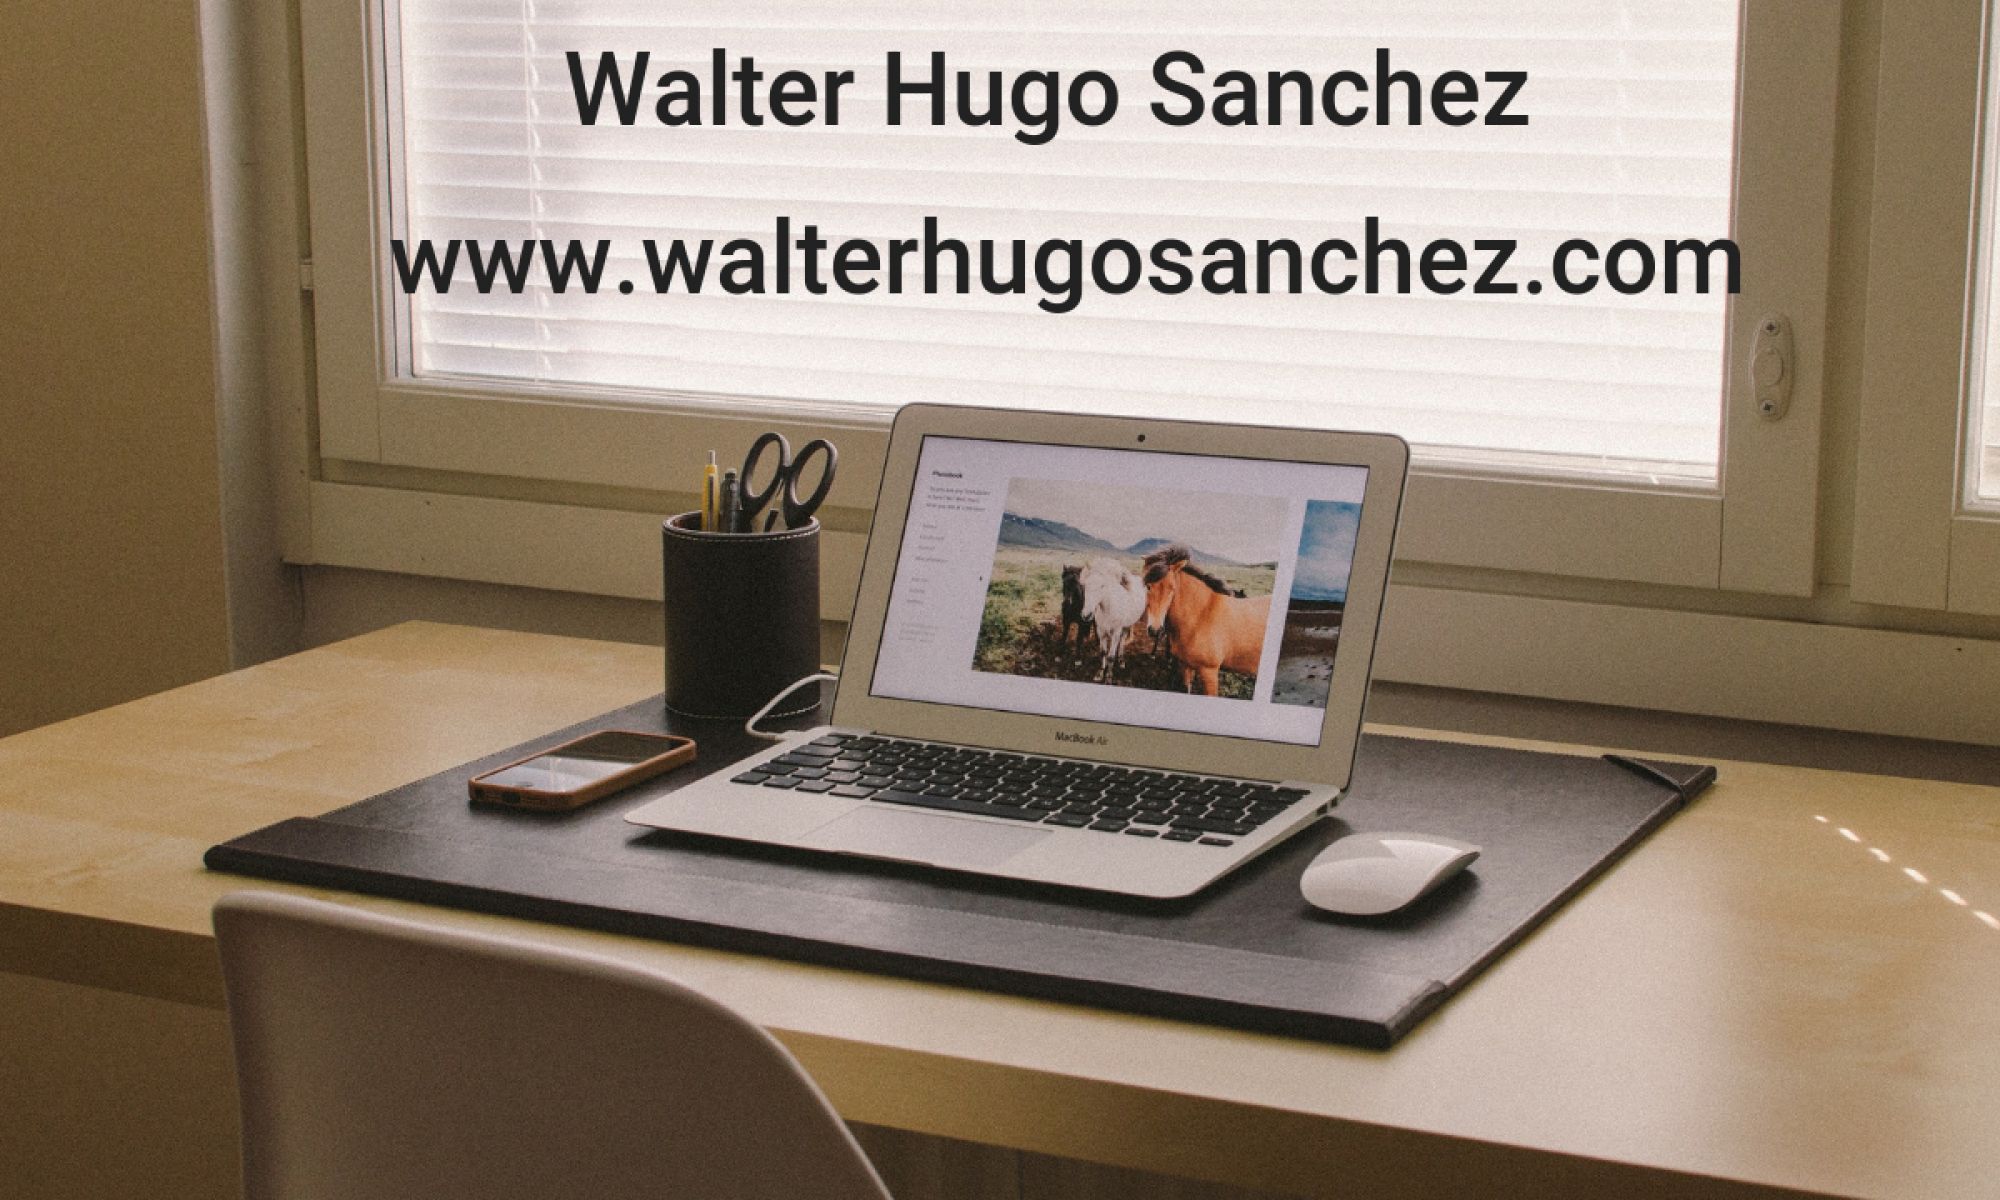 Walter Hugo Sanchez